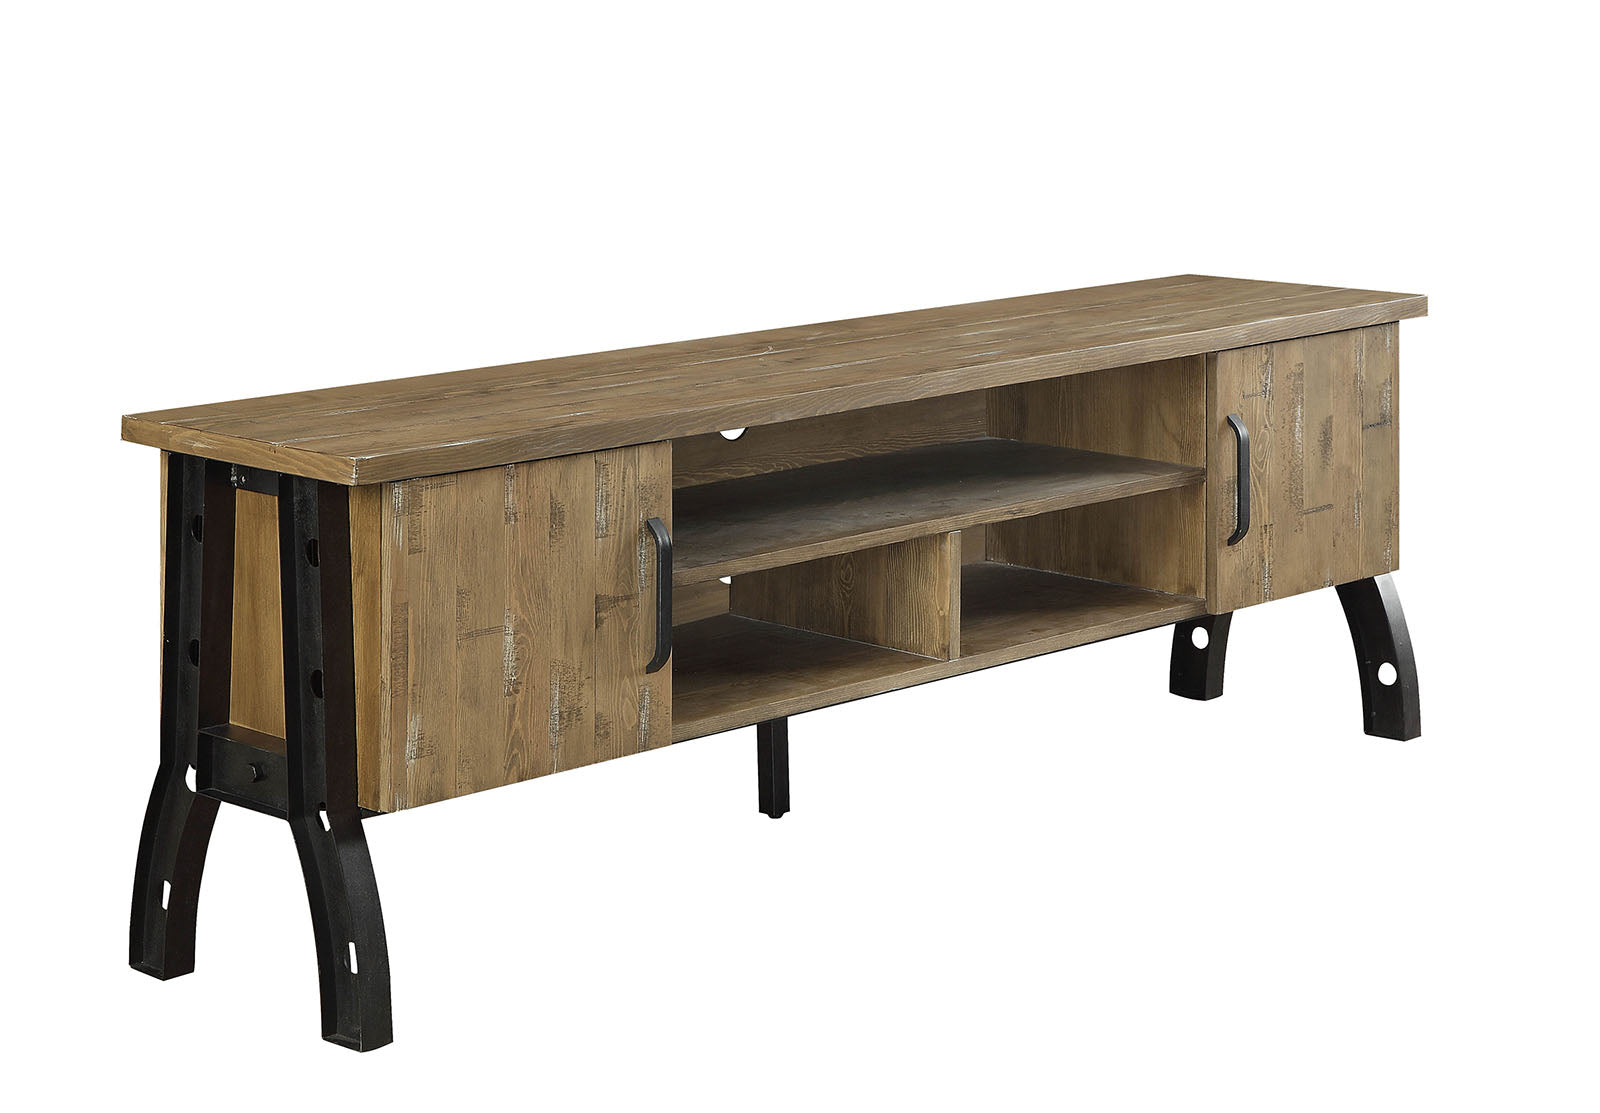 "THORNTON 72"" INDUSTRIAL TV STAND WITH BEAM ACCENTS"